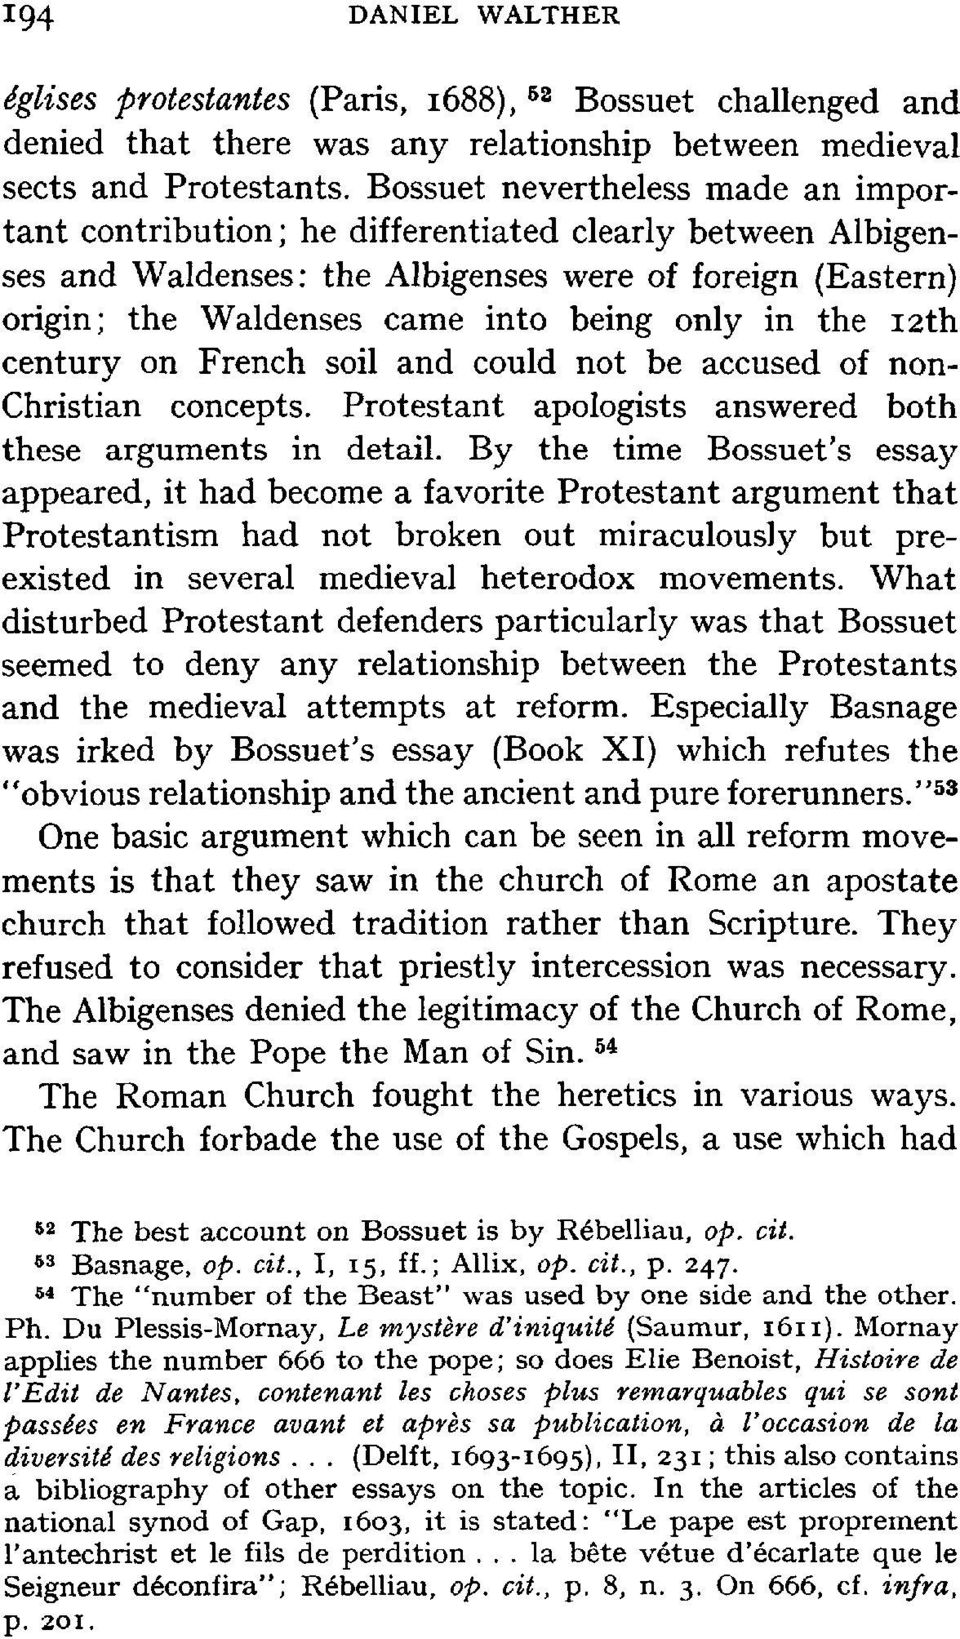 in the 12th century on French soil and could not be accused of non- Christian concepts. Protestant apologists answered both these arguments in detail.